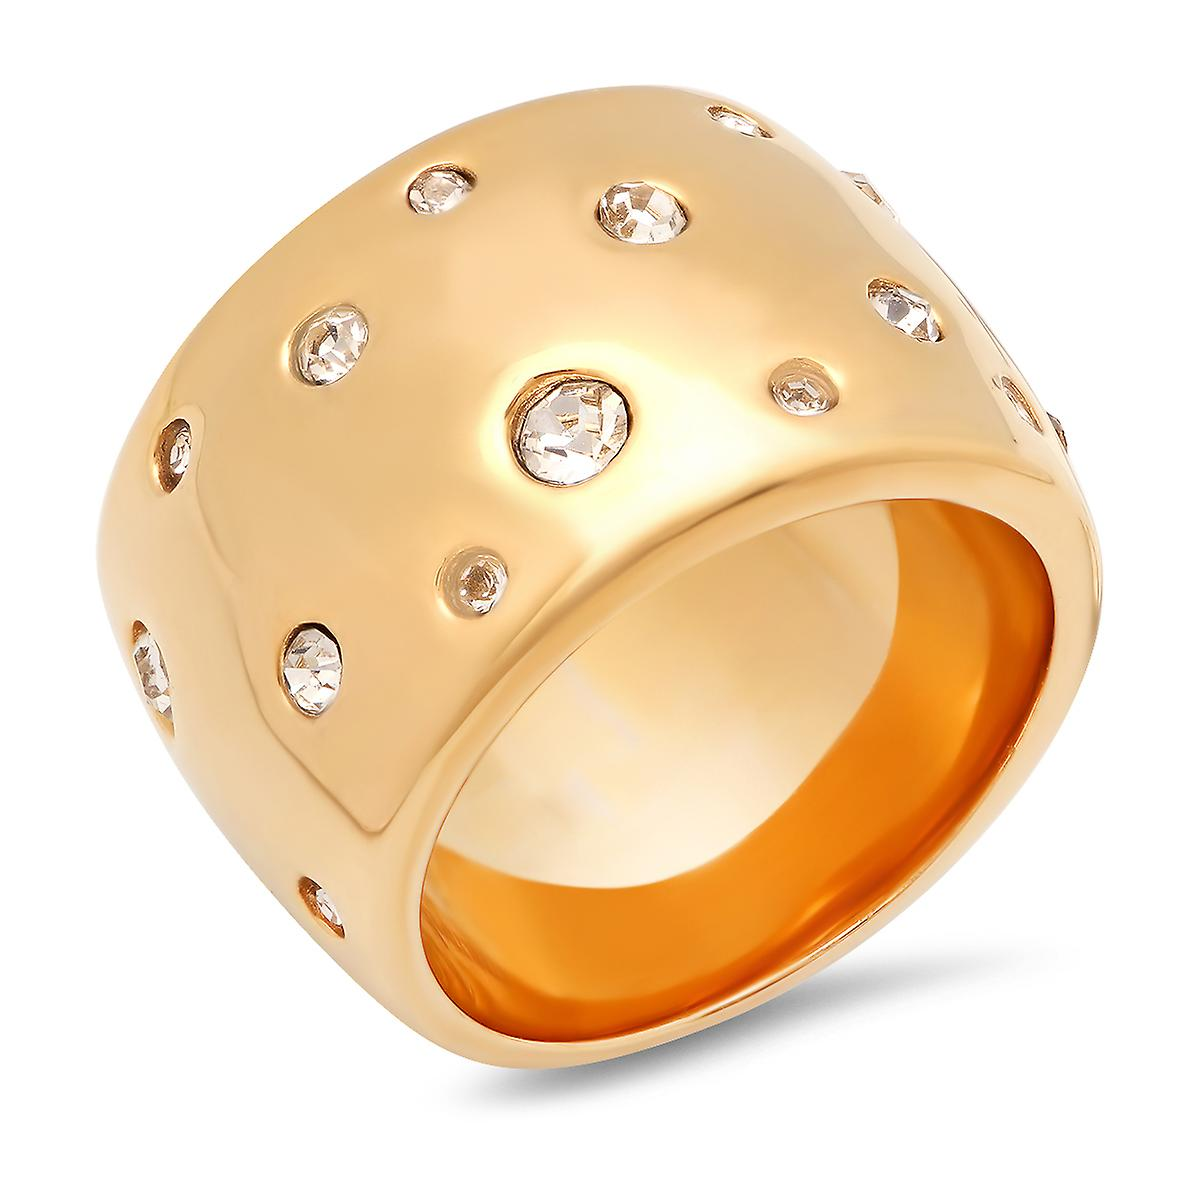 Ladies 18K Gold Plated Stainless Steel Simulated Diamond Dotted Ring